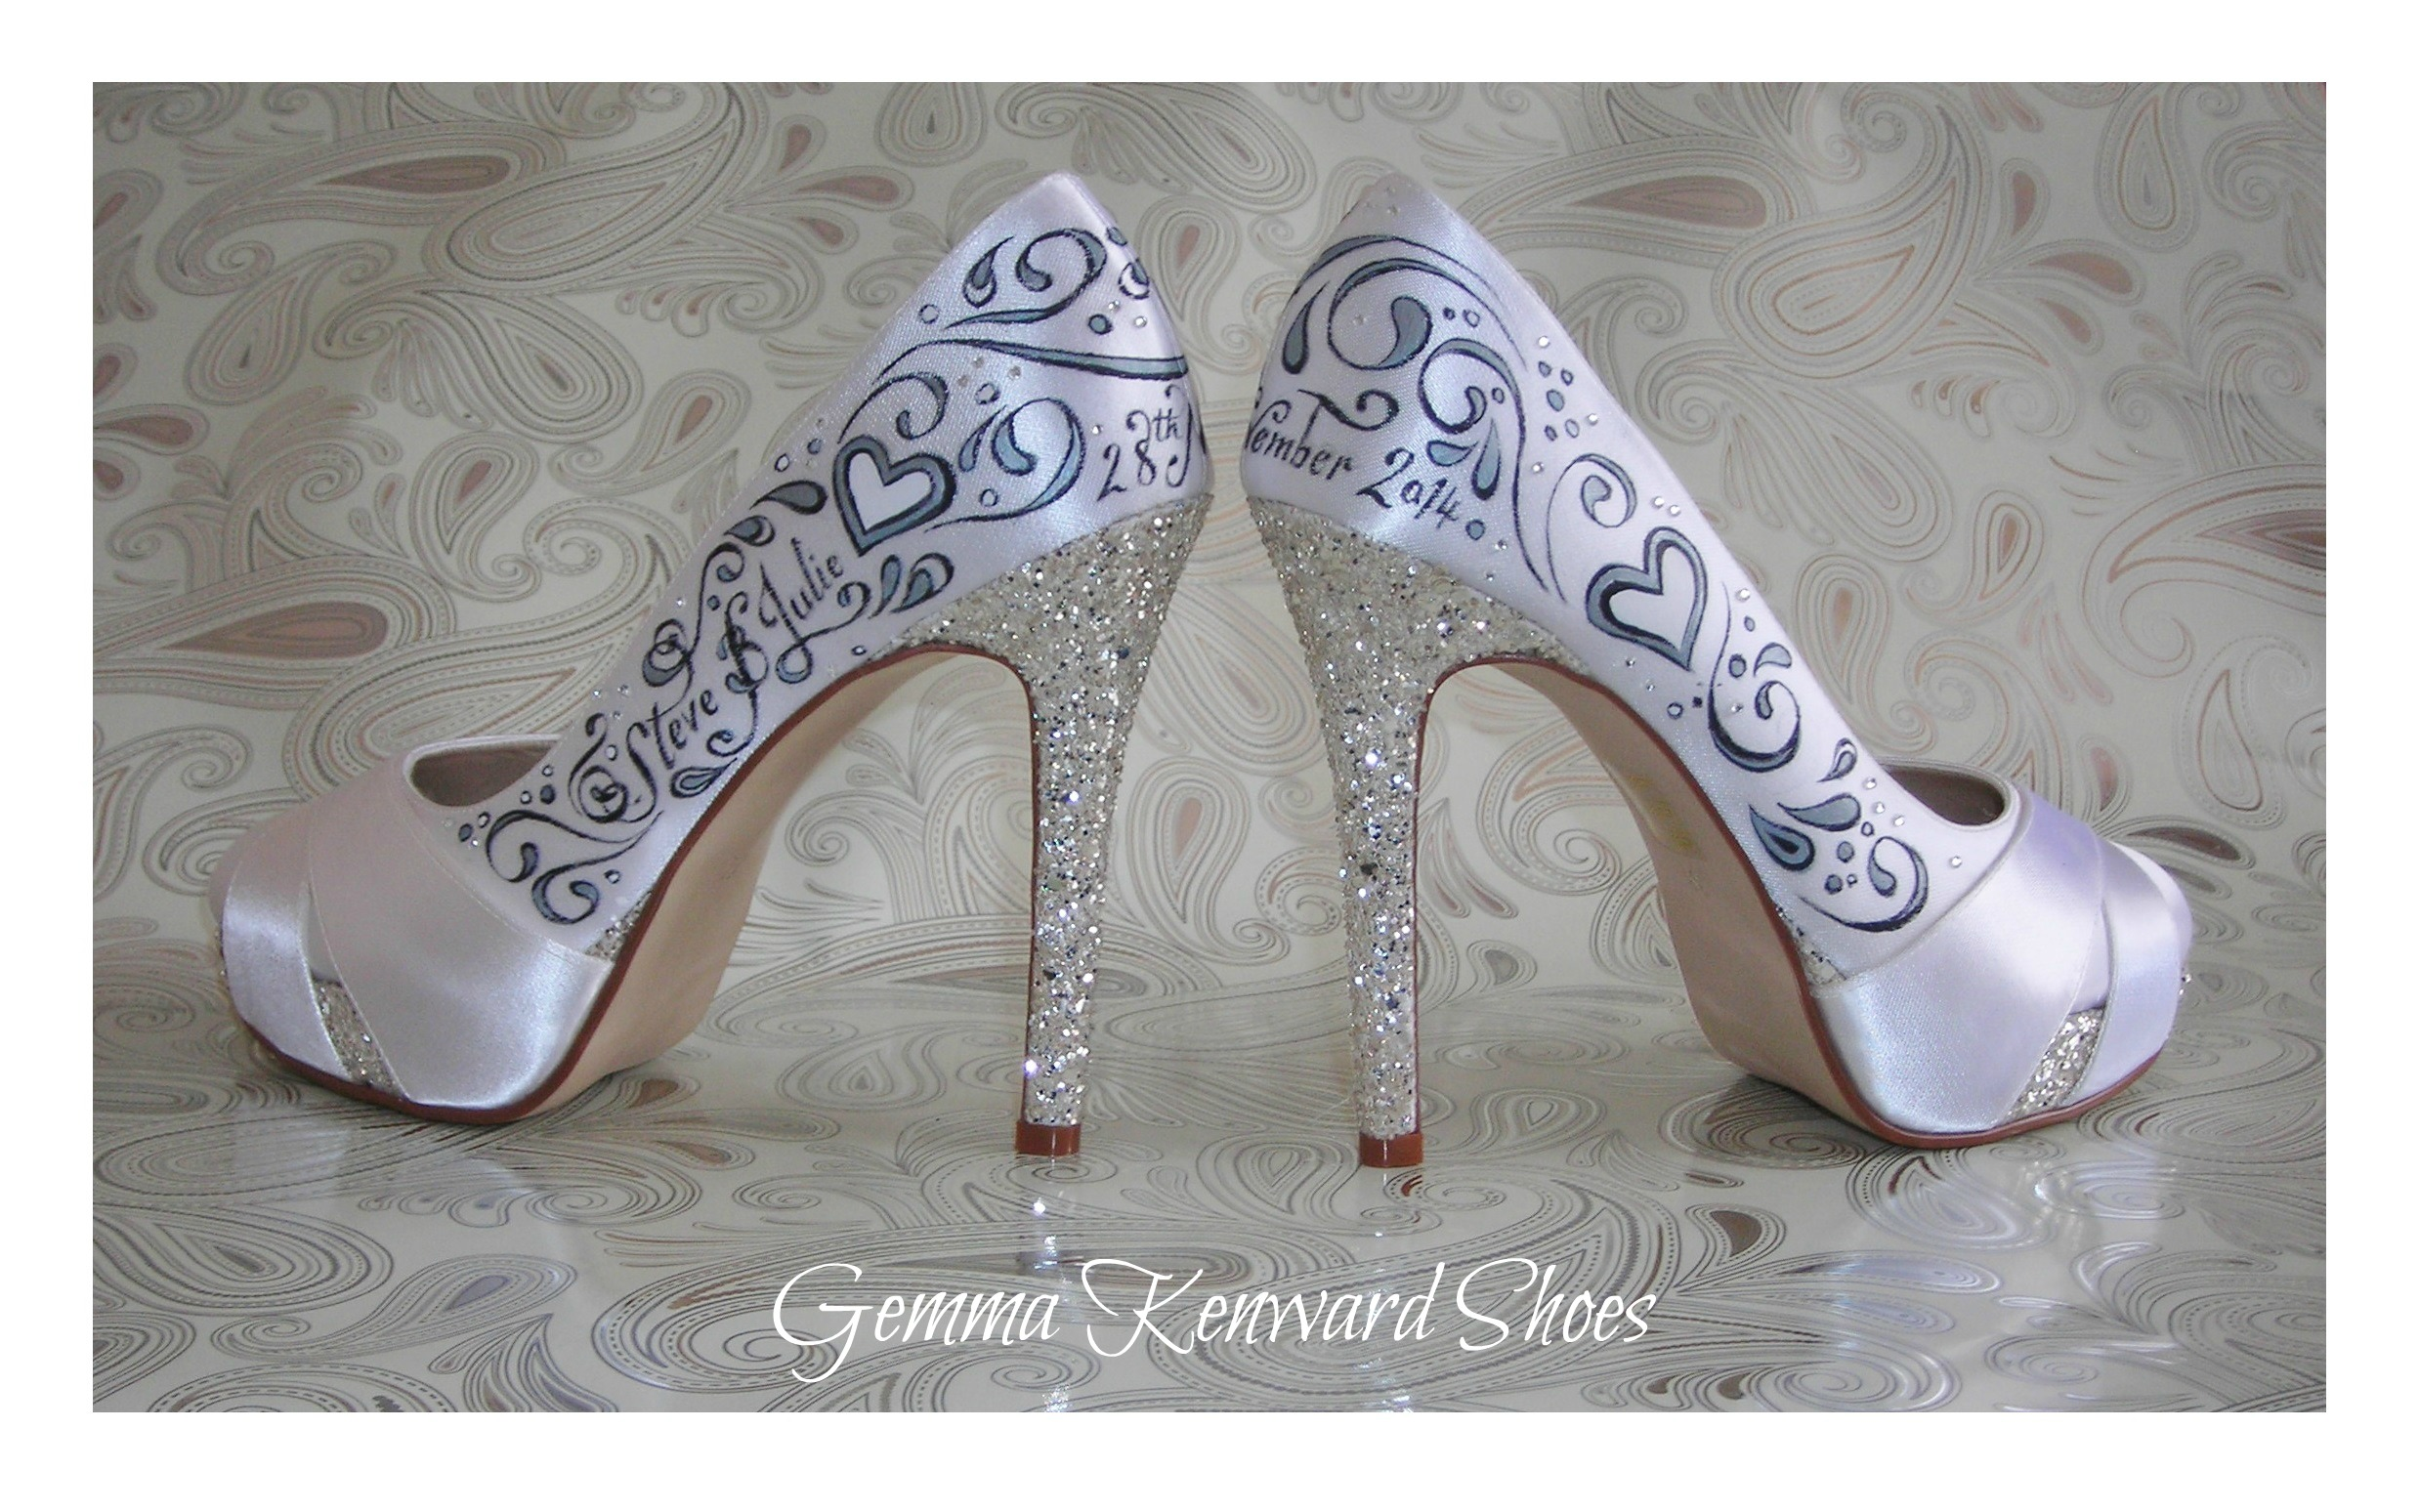 Hand painted shoes personalised with the names, date of the wedding and tiny diamantes! (pain stakingly applied to the shoes with a steady hand and tweezers, may I add!